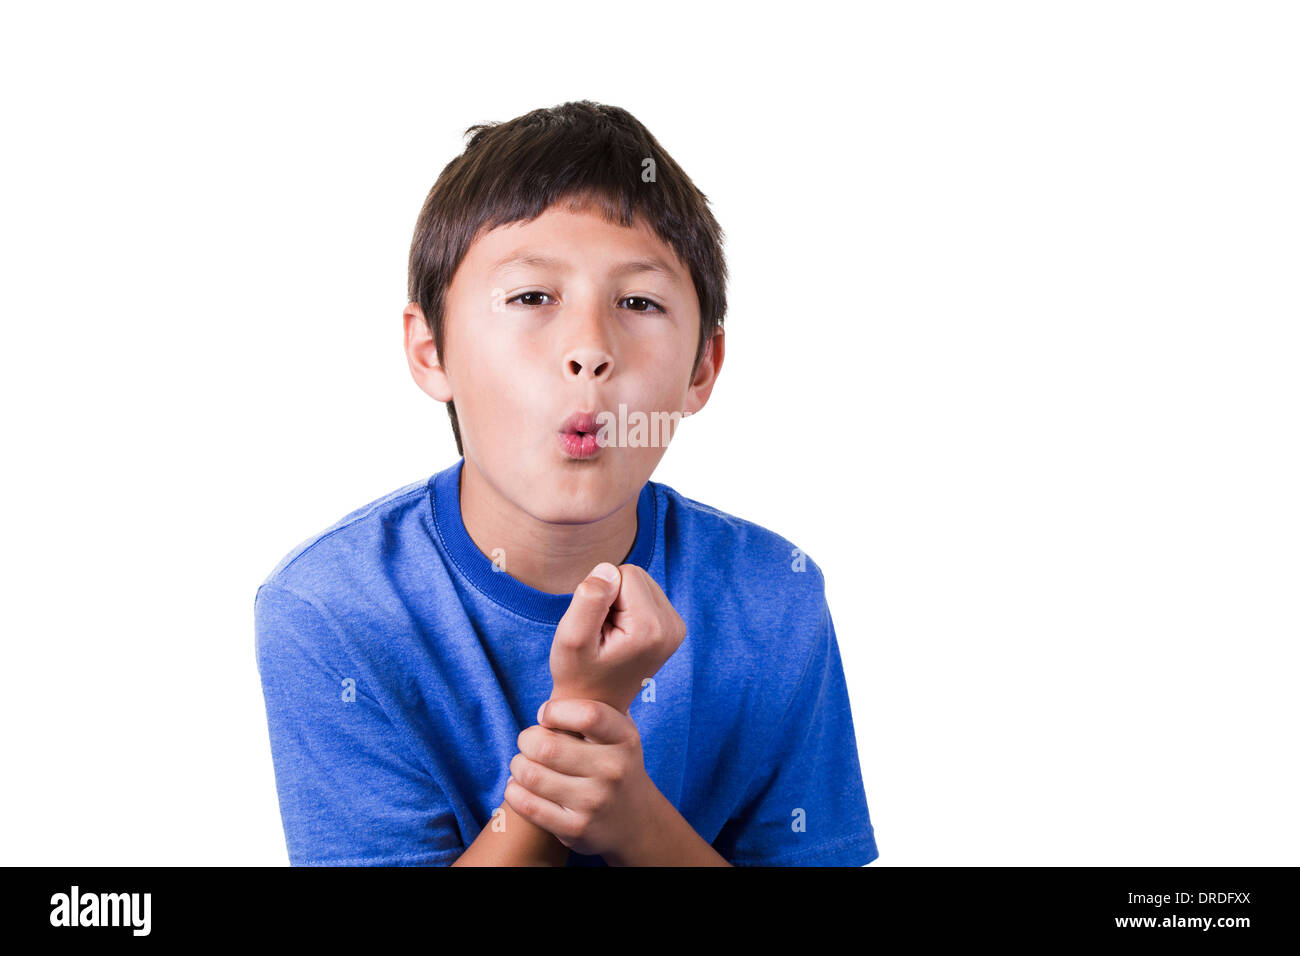 Young boy with sprained hurt wrist - on white background - Stock Image